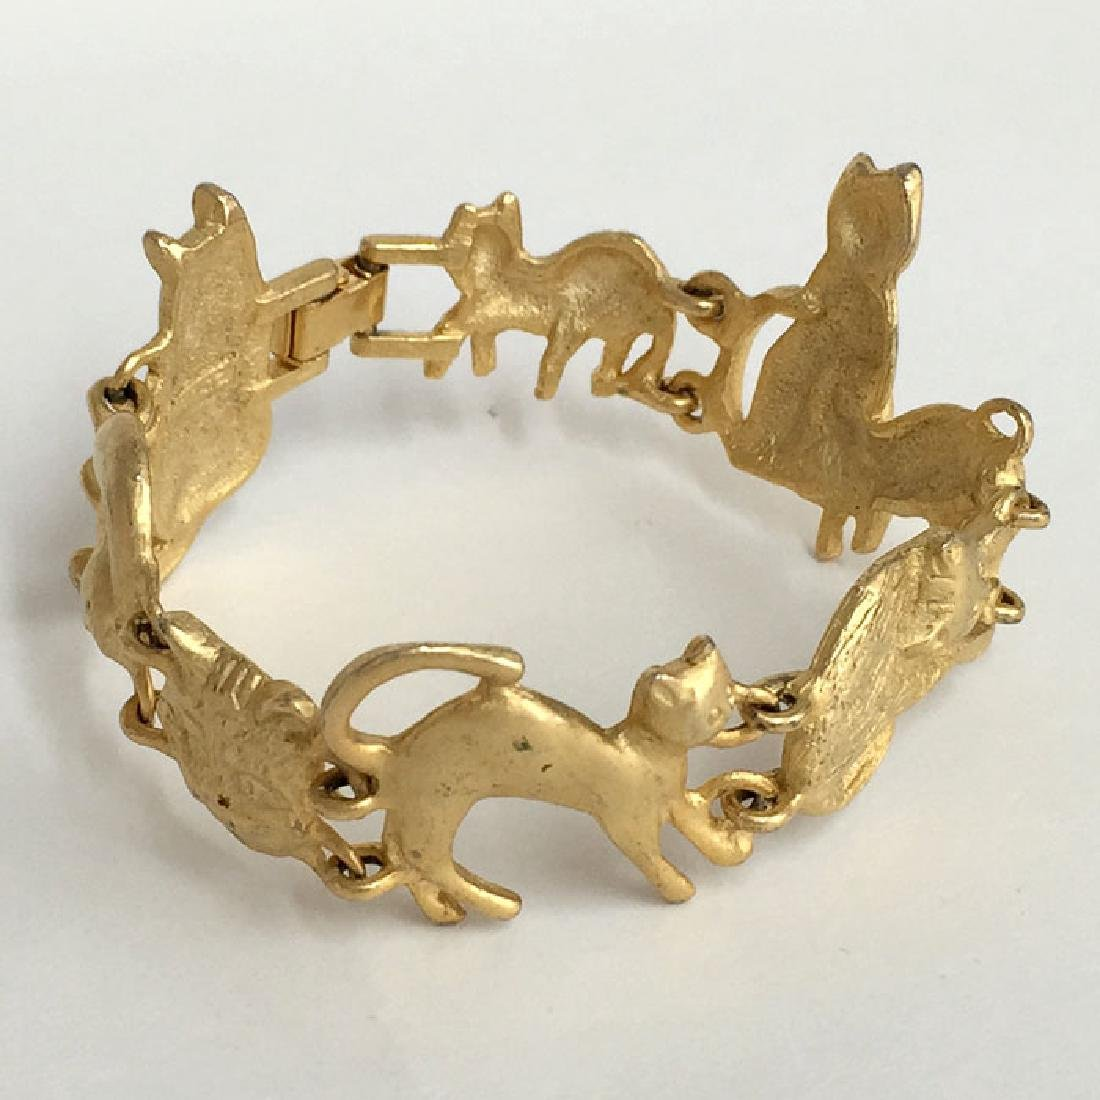 A.J.C.: Gold plated satin finish CATS shaped links